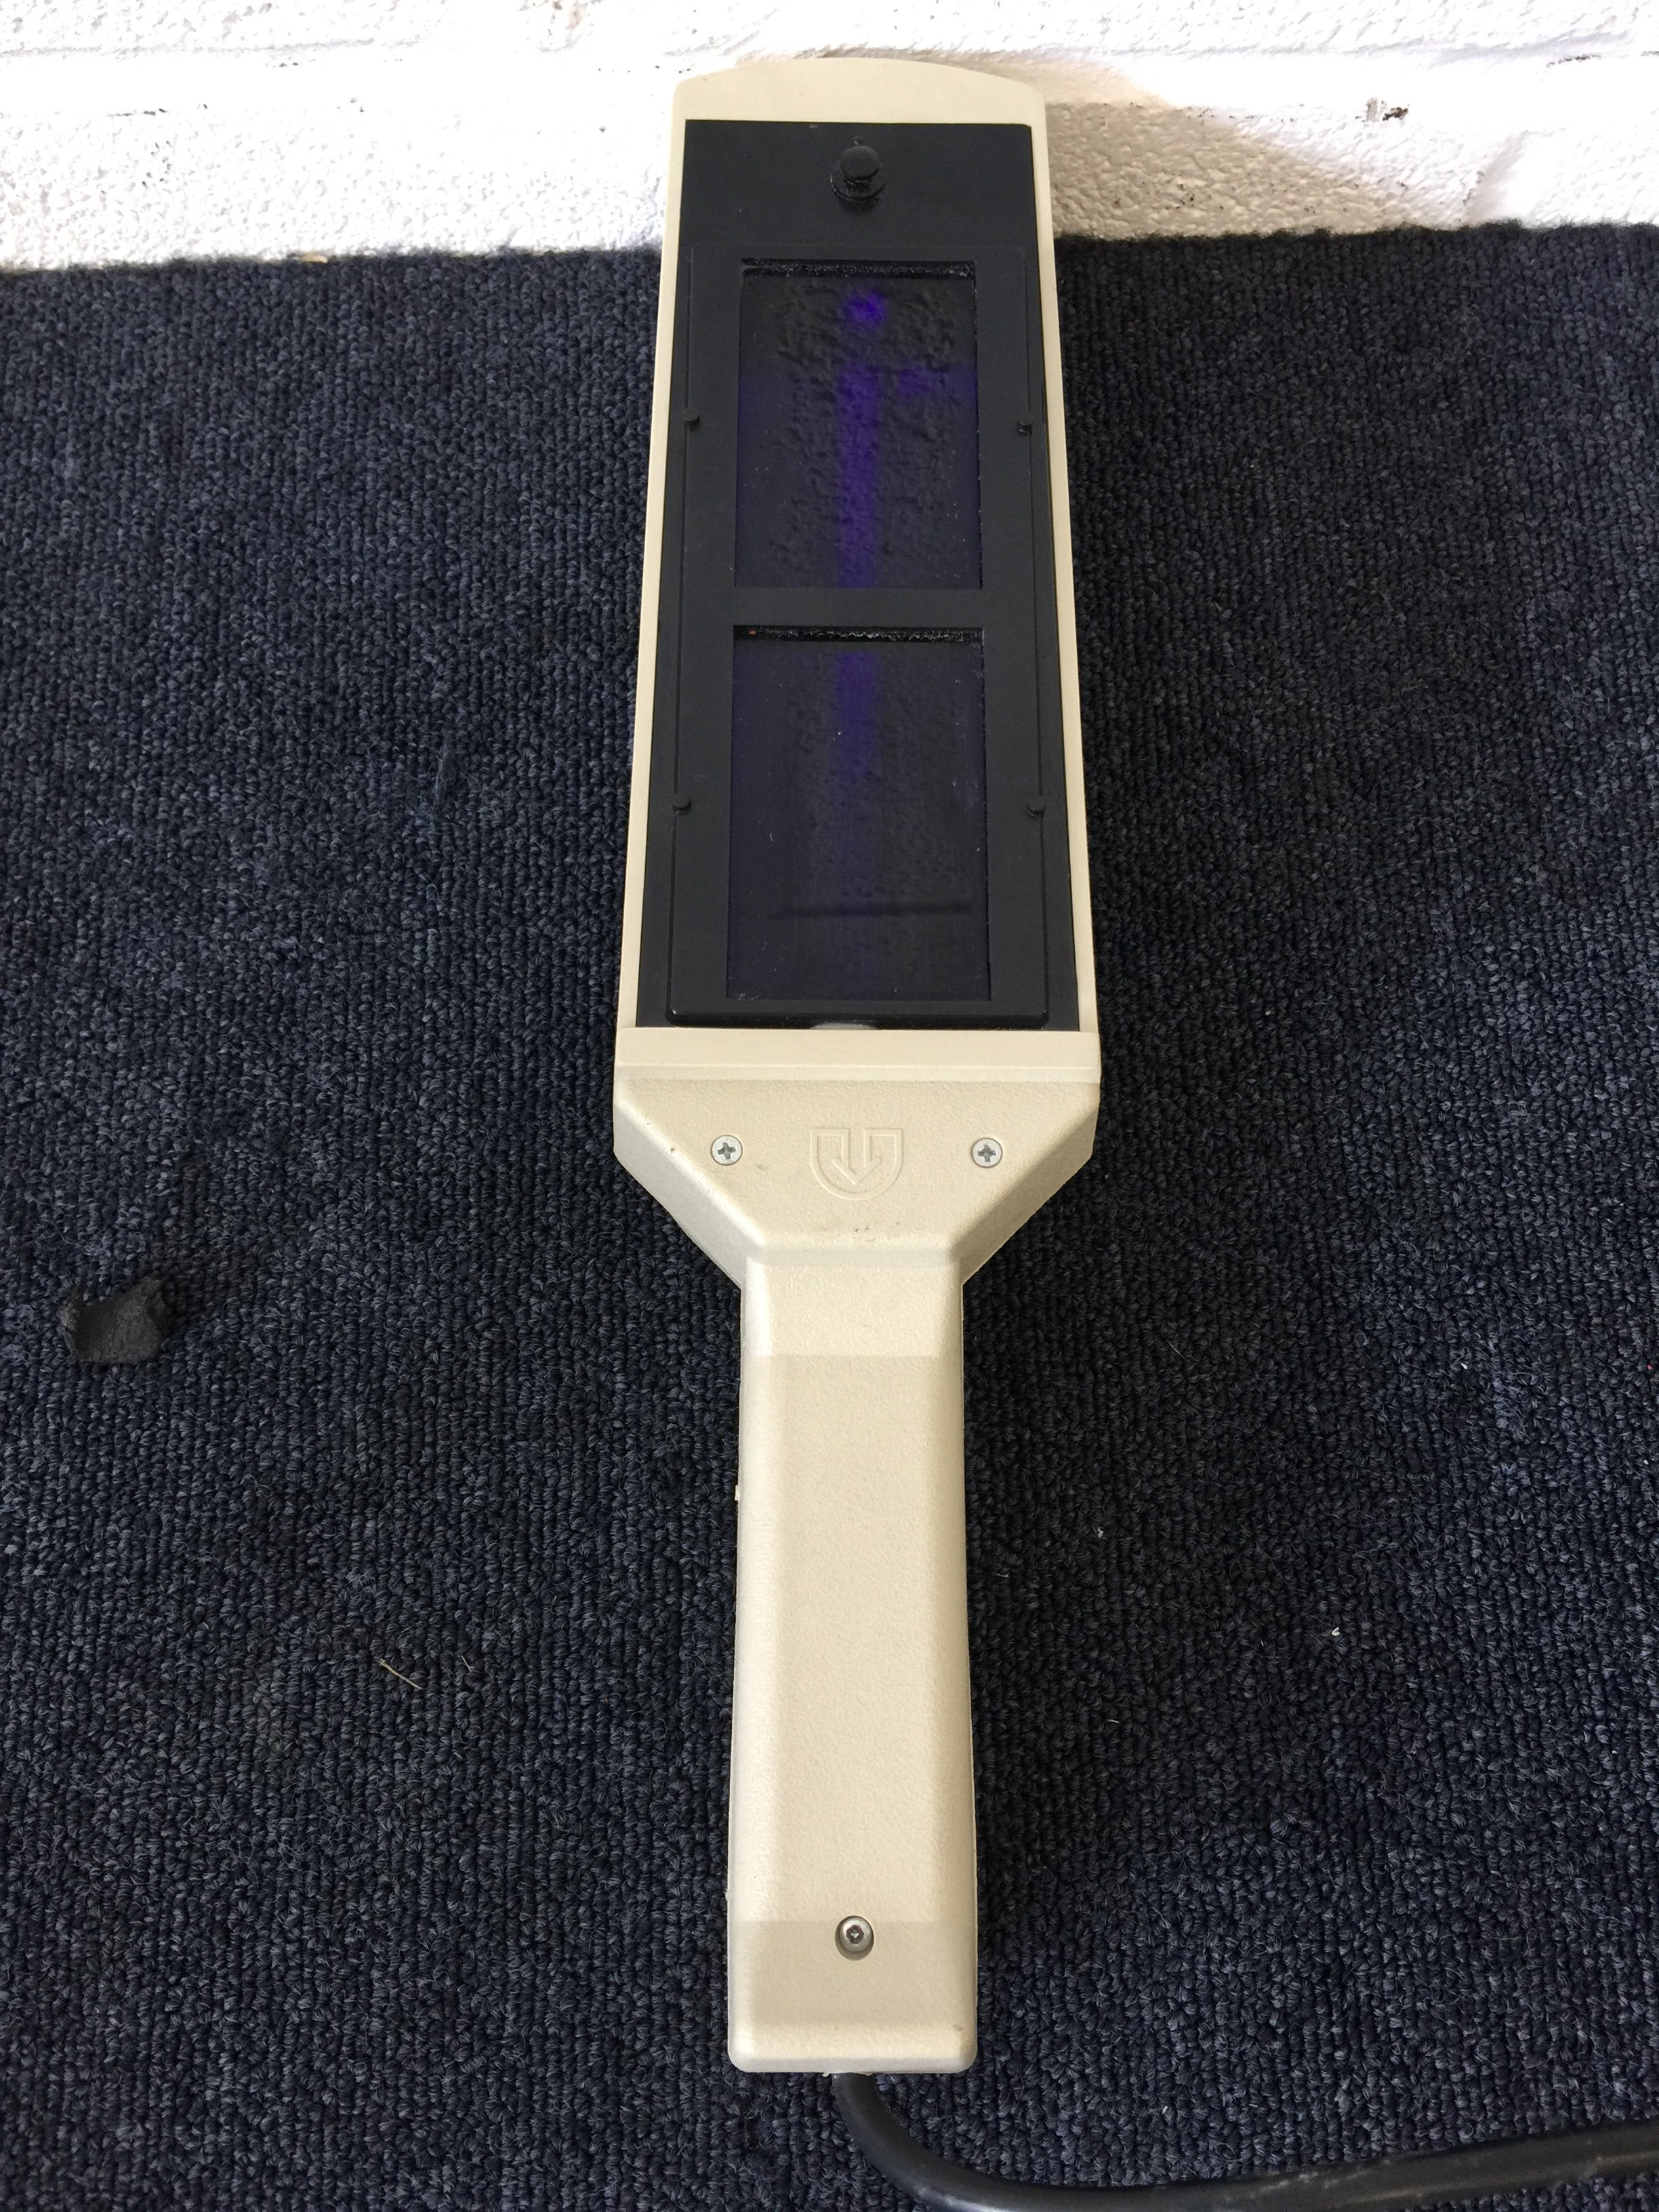 UVP UVG-54 Handheld UV Lamp 95-0004-10